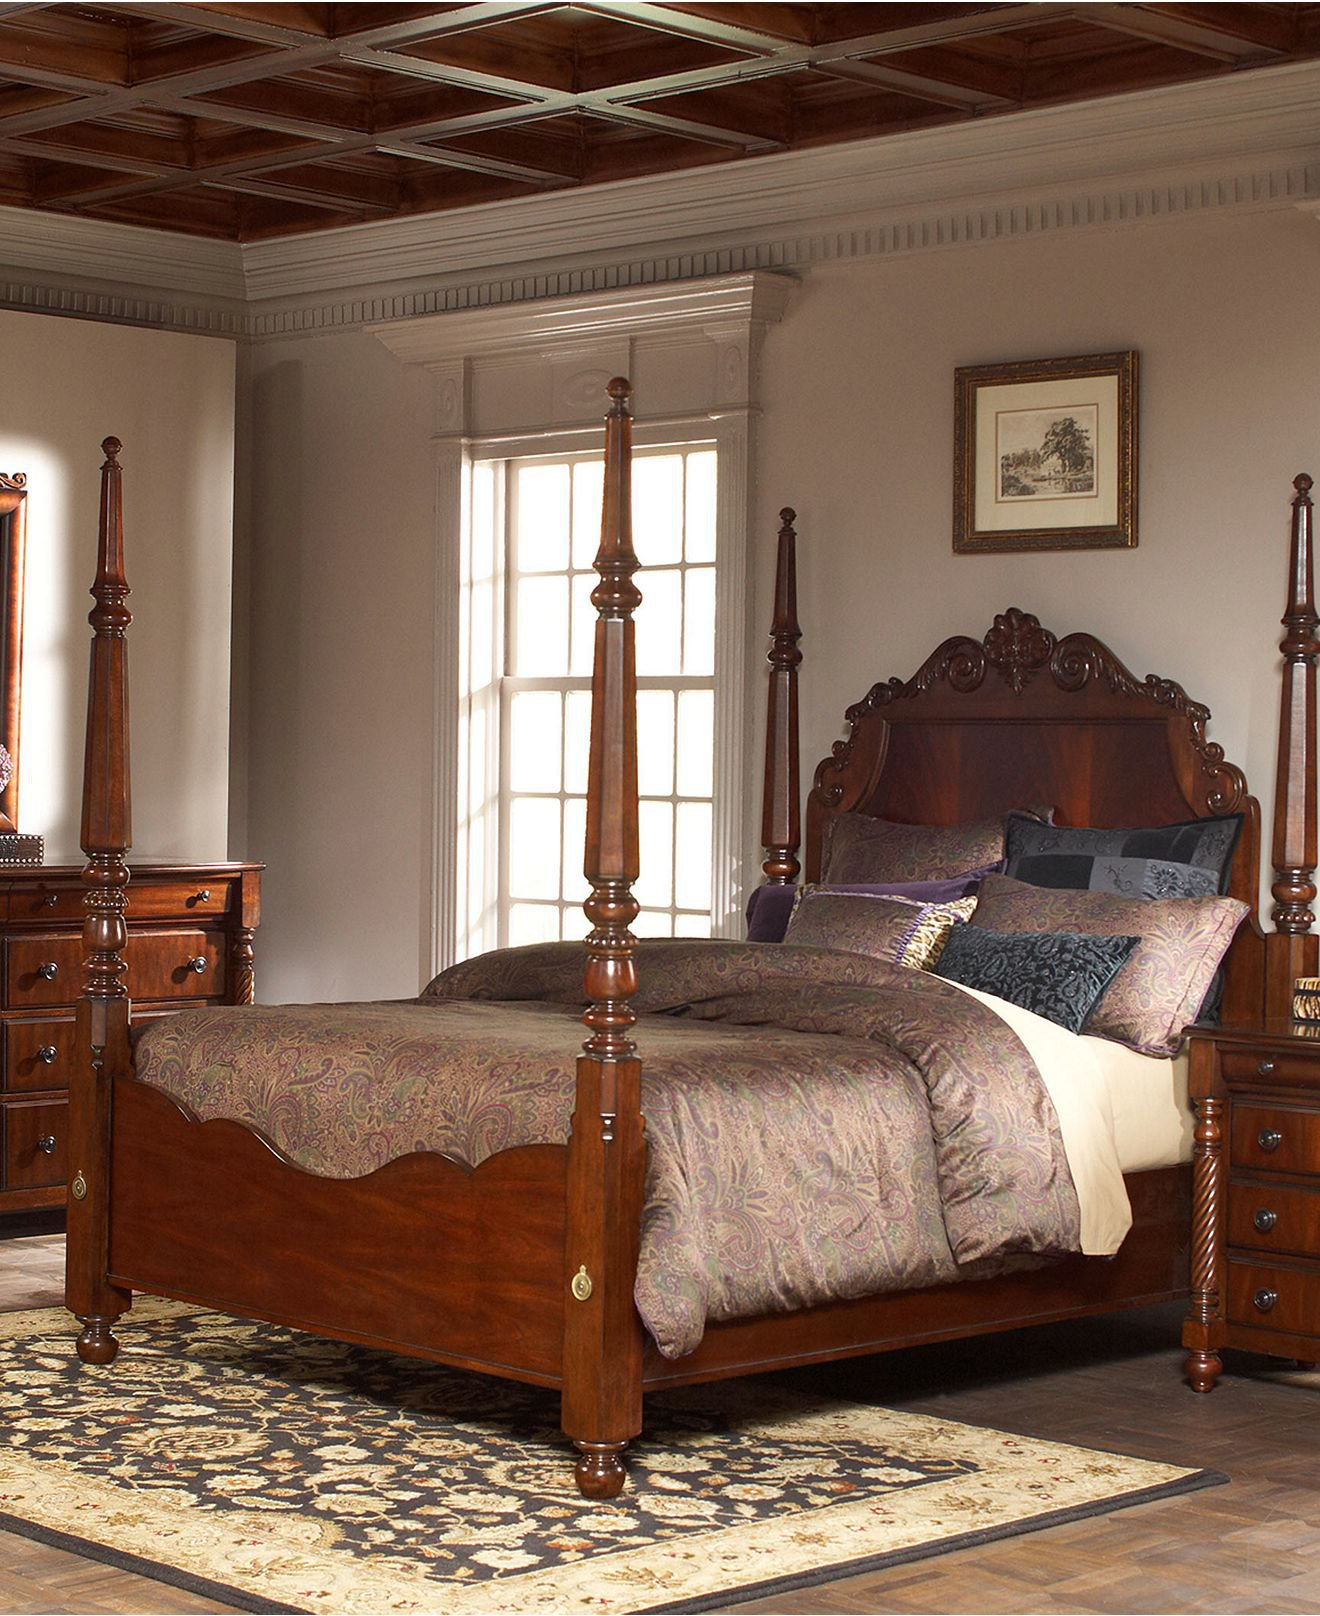 lauren ralph lauren bedroom furniture from macy 39 s the house